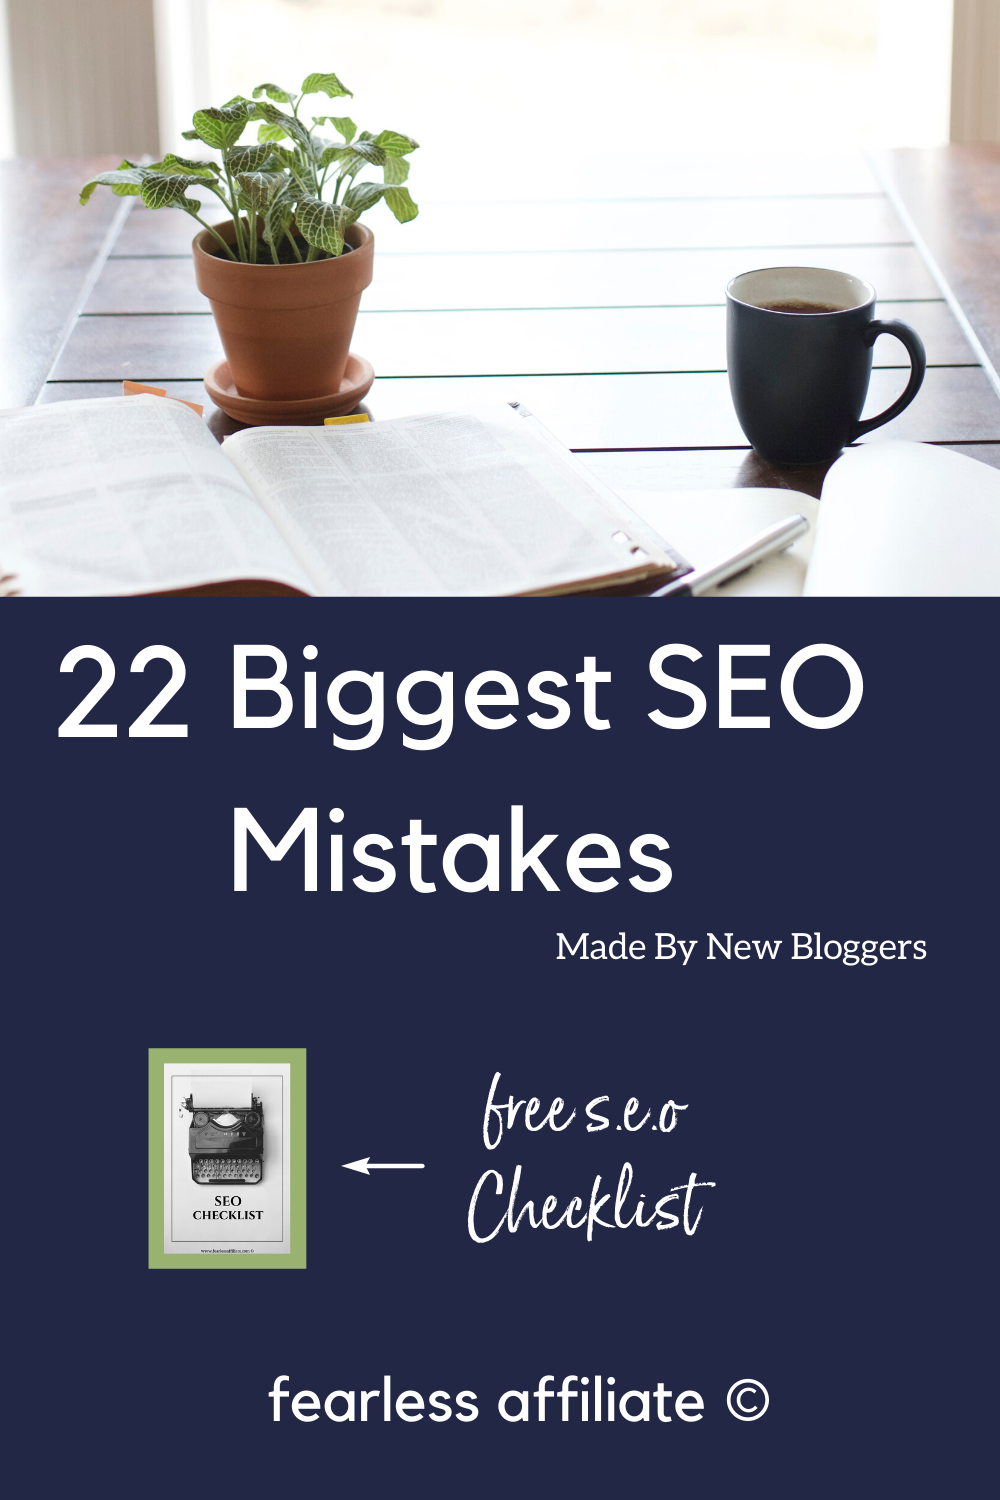 The 22 Biggest SEO Mistakes Made By New Bloggers